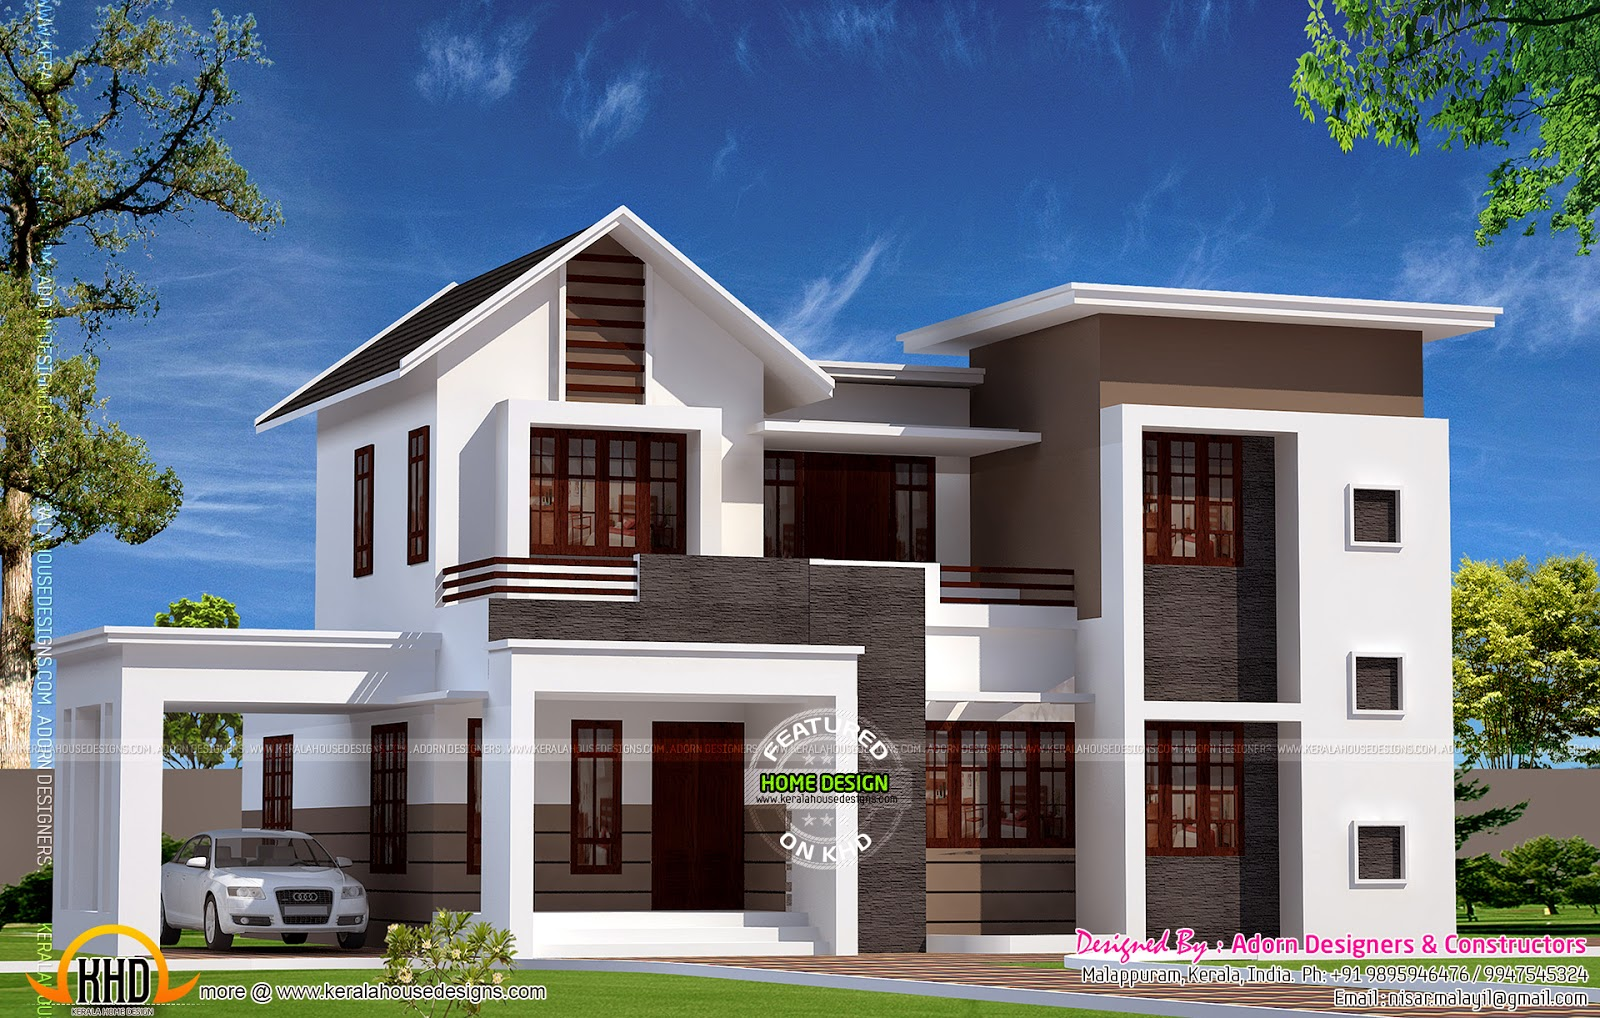 September 2014 kerala home design and floor plans - New homes designs photos ...